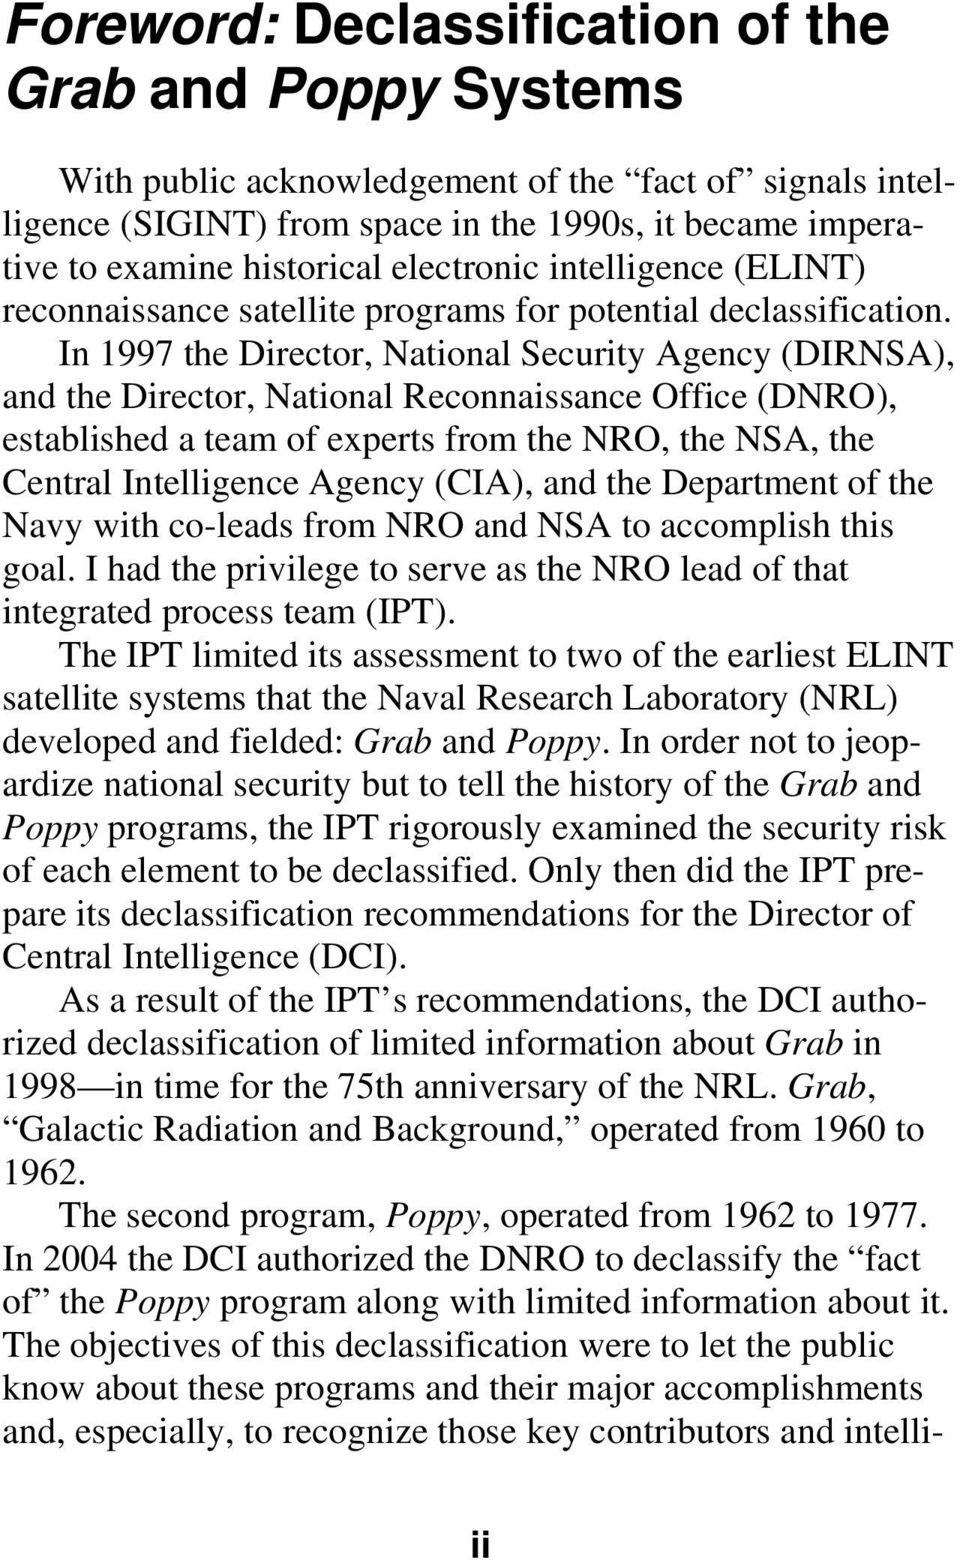 In 1997 the Director, National Security Agency (DIRNSA), and the Director, National Reconnaissance Office (DNRO), established a team of experts from the NRO, the NSA, the Central Intelligence Agency